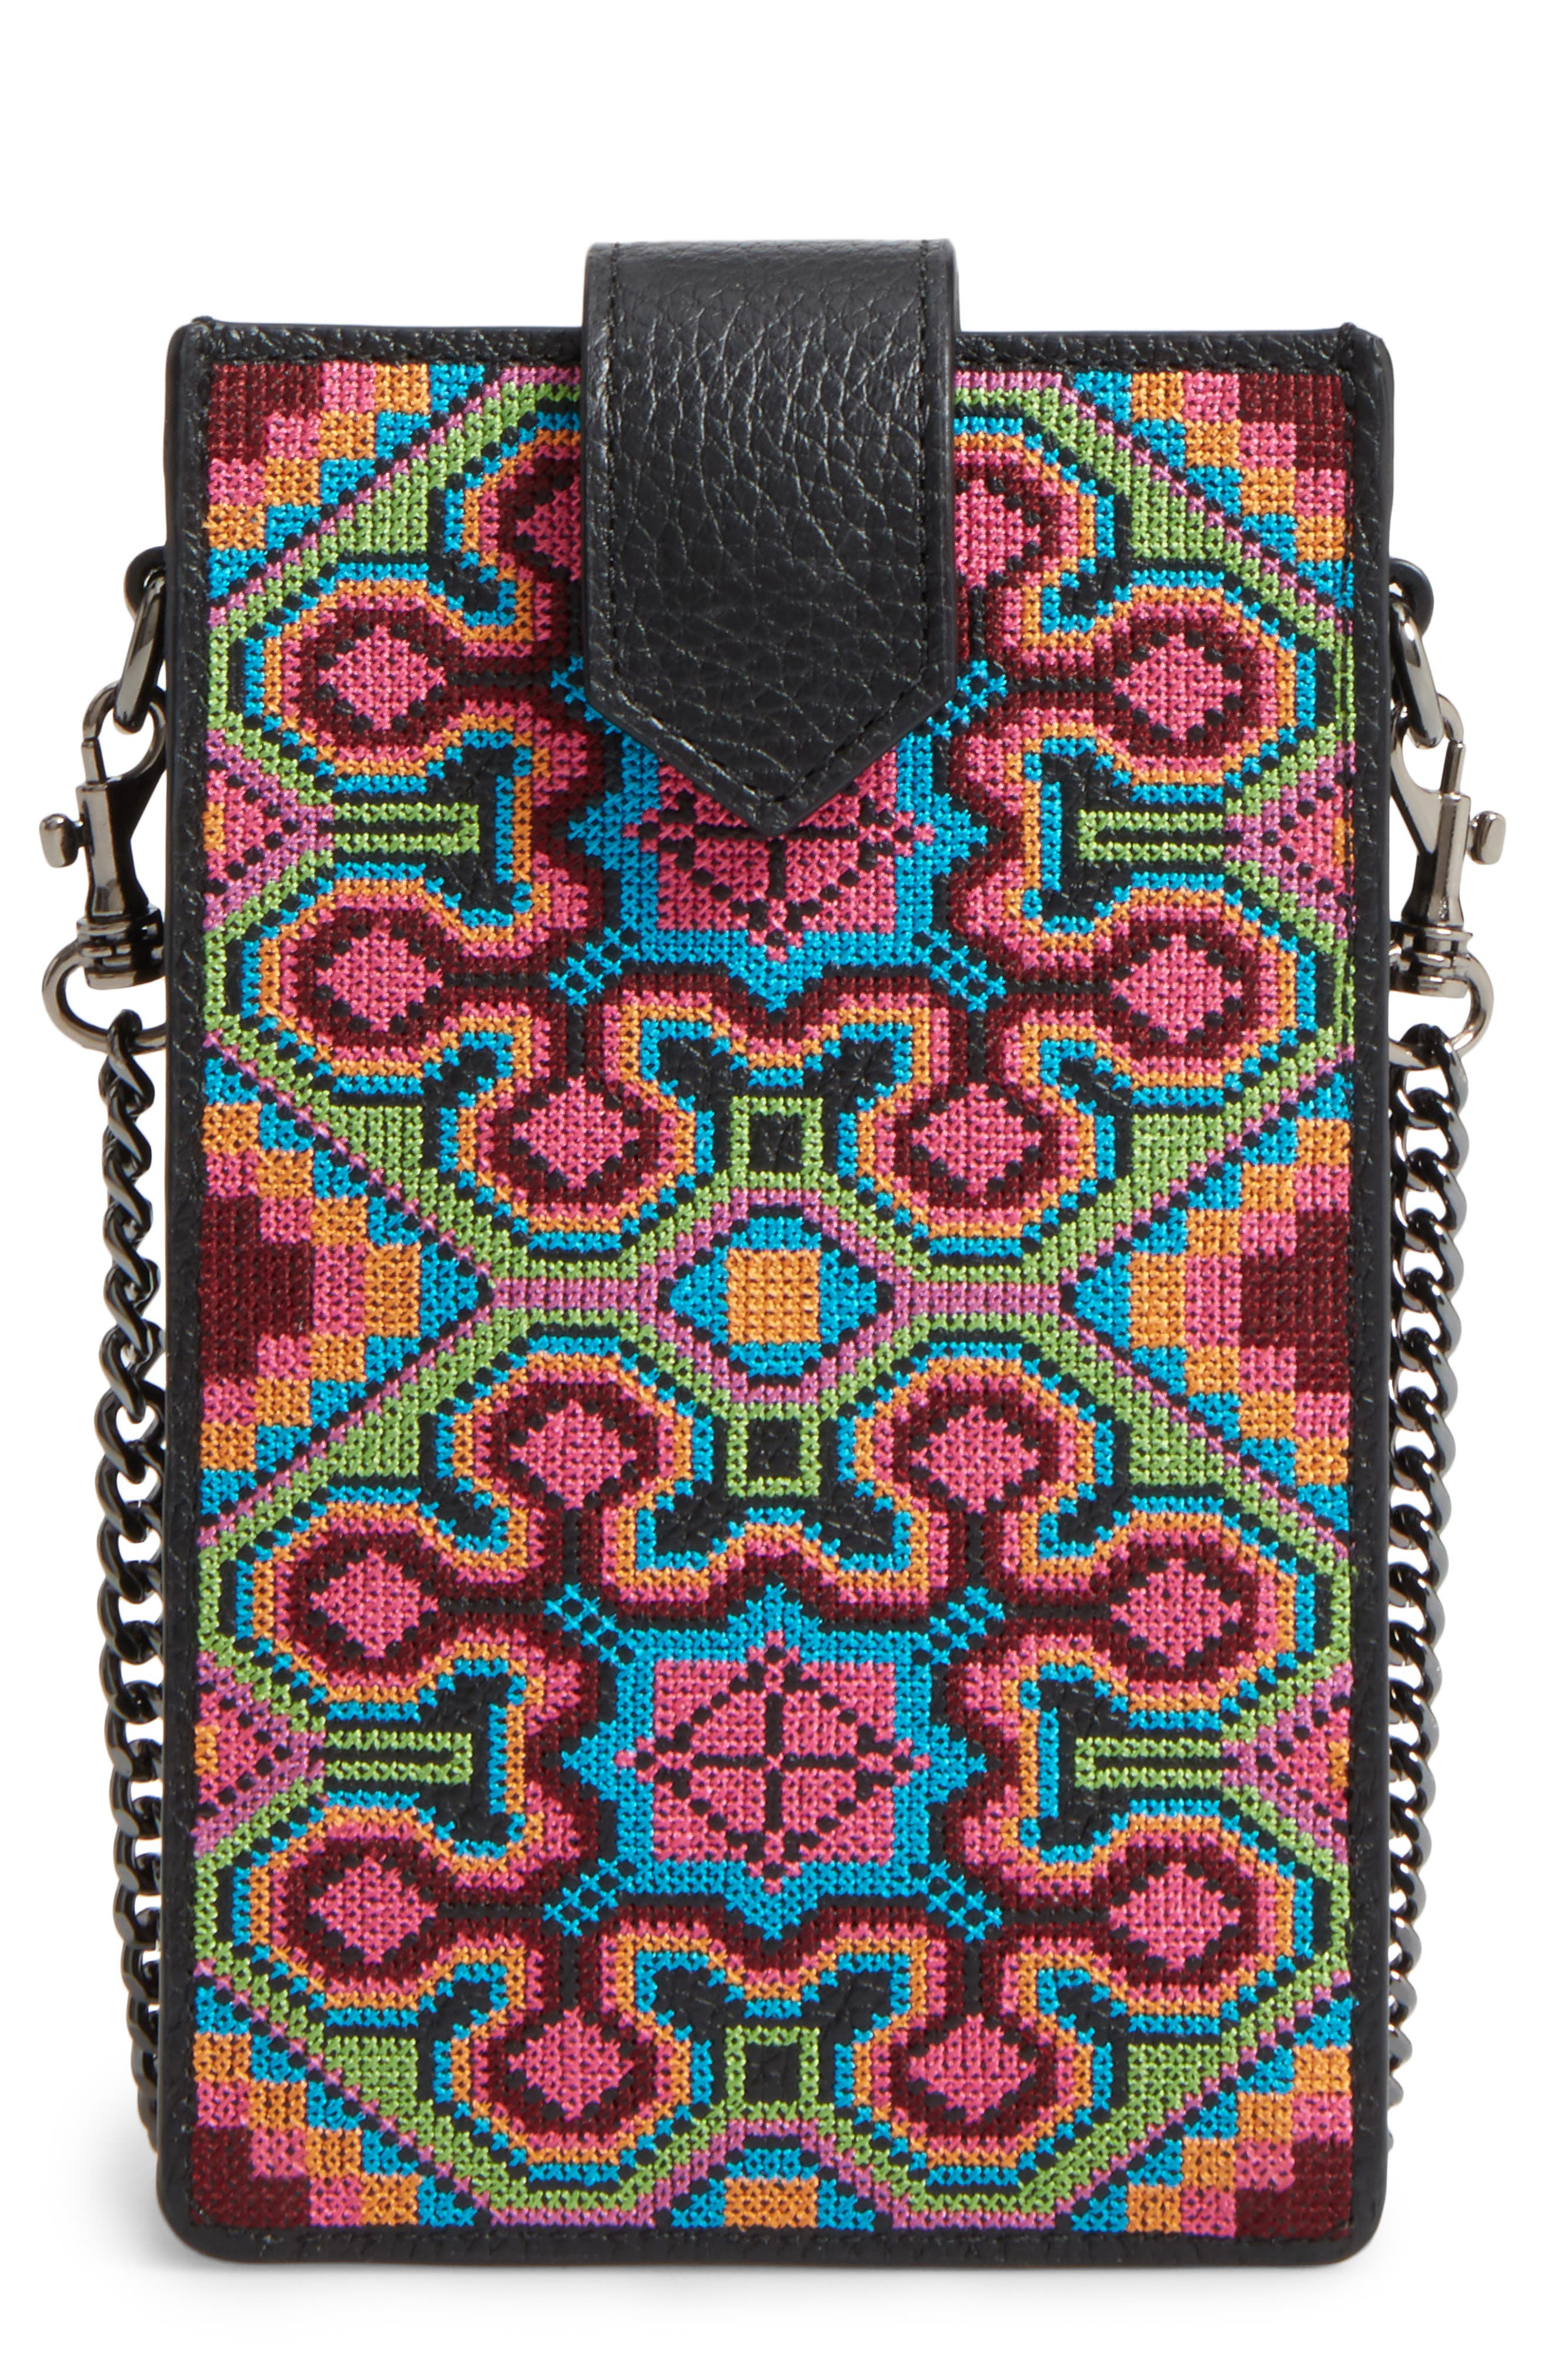 Alternate Image 1 Selected - Botkier Leather Phone Crossbody Case (Nordstrom Exclusive)